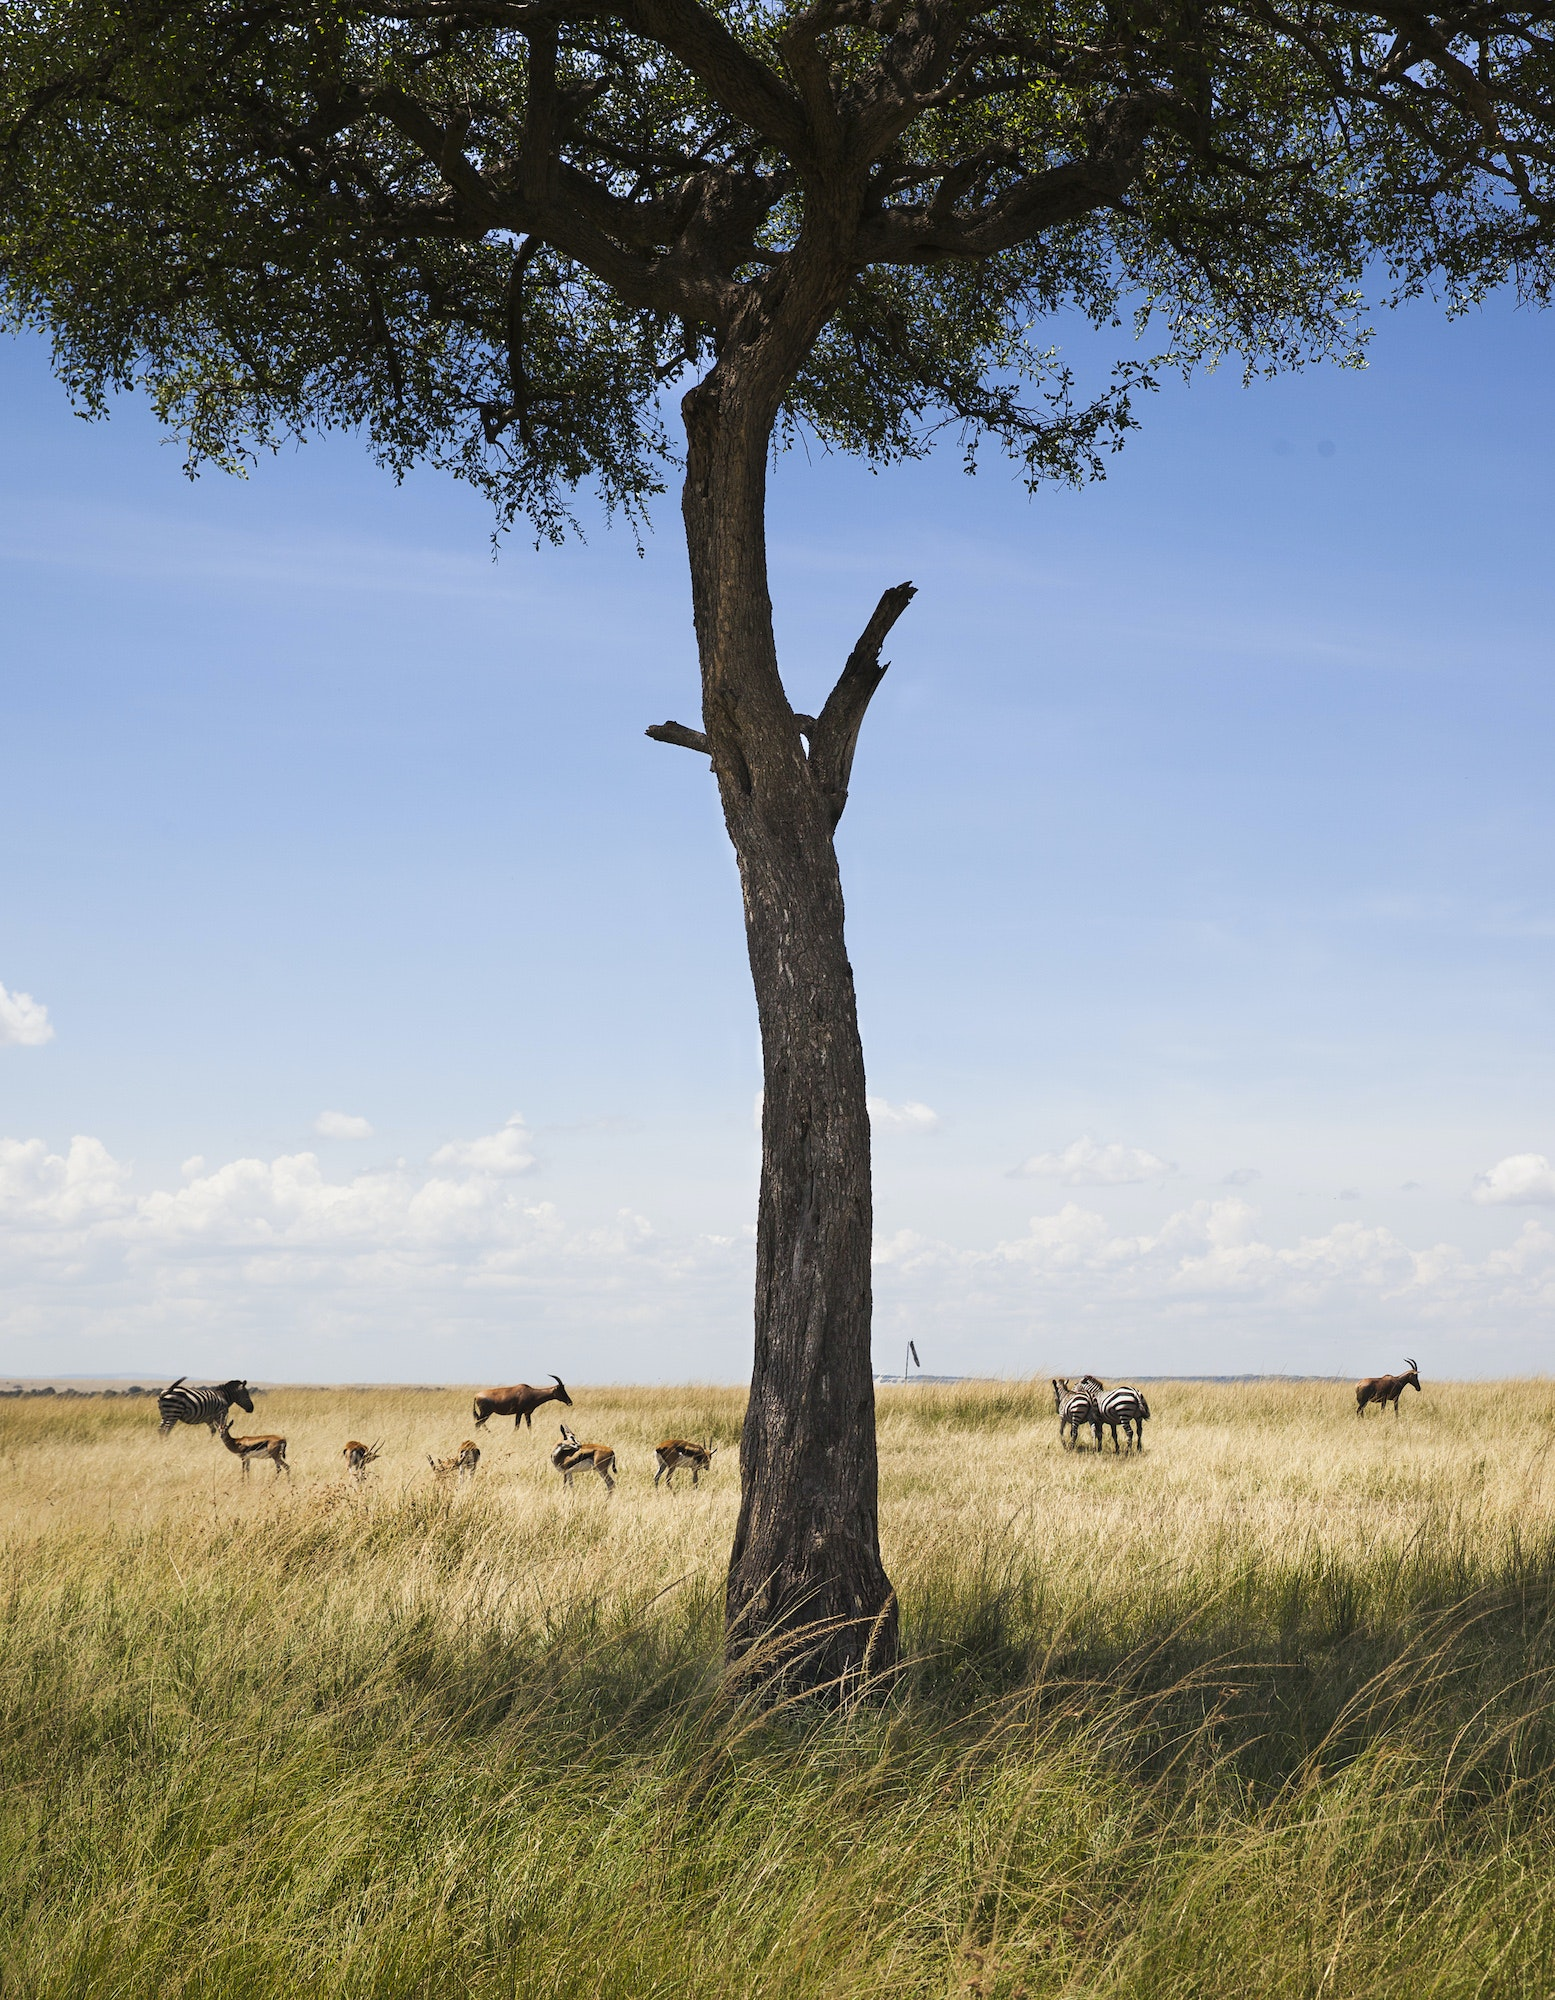 Balanites trees shade zebras, topis, and the Big Five: lions, elephants, buffaloes, leopards, and rhinoceroses.